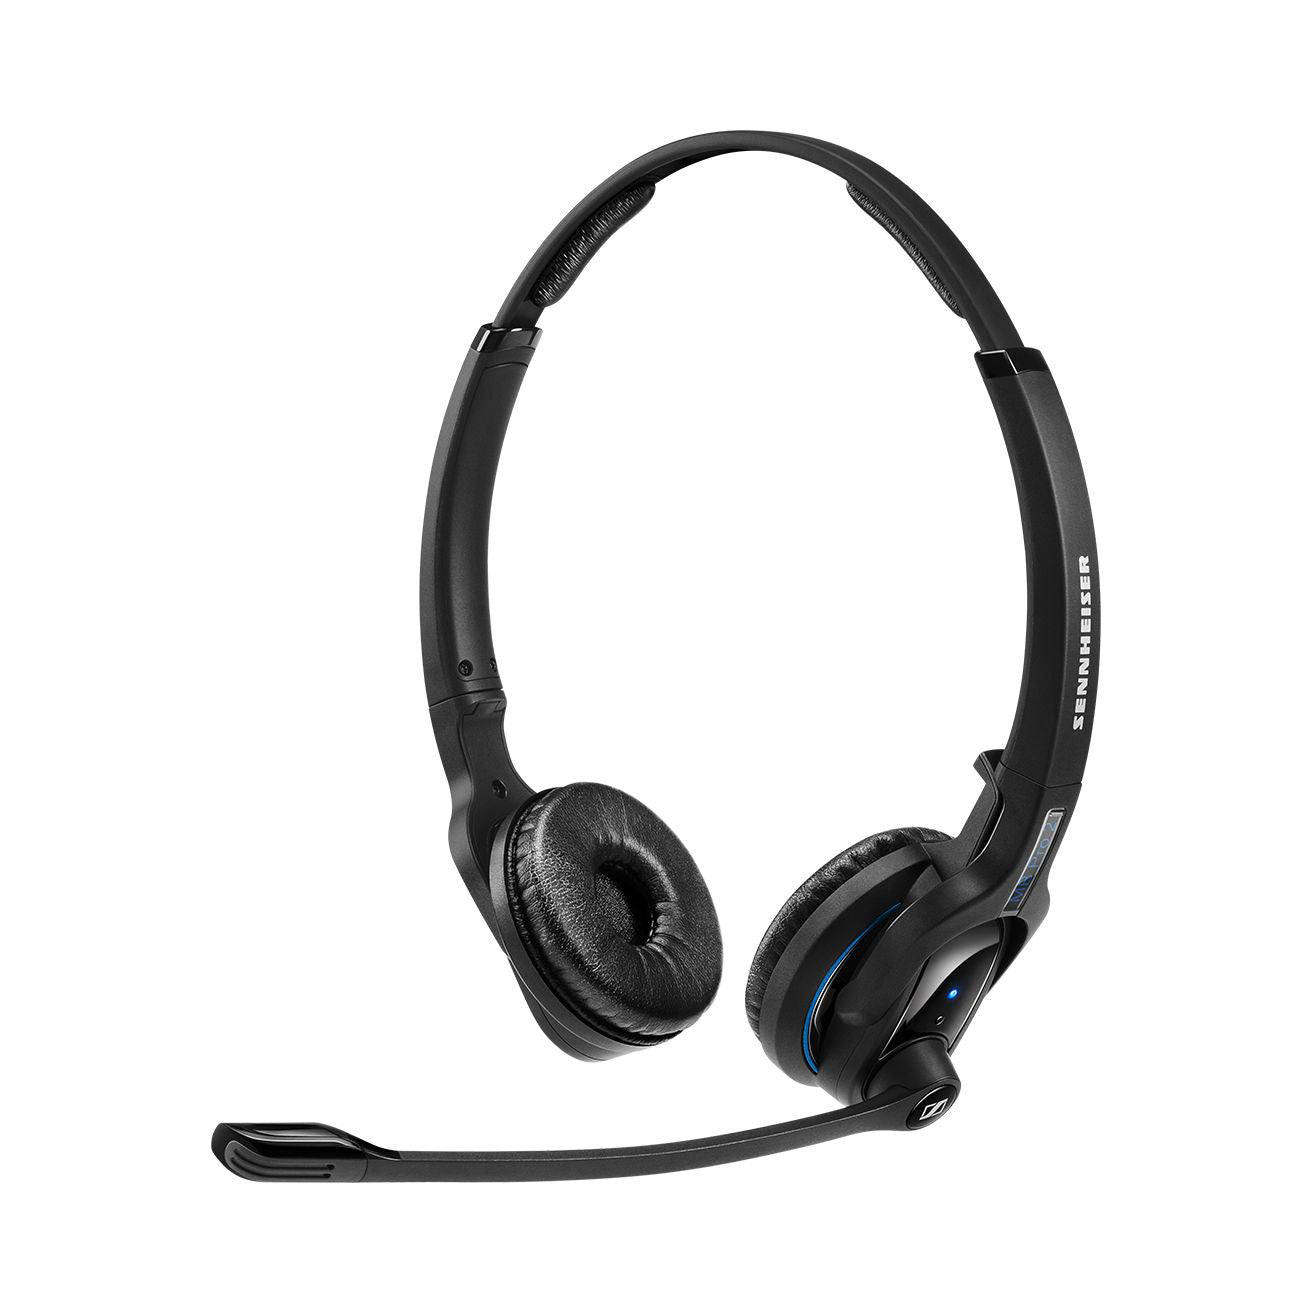 Wireless Bluetooth Headset - MB Pro 2